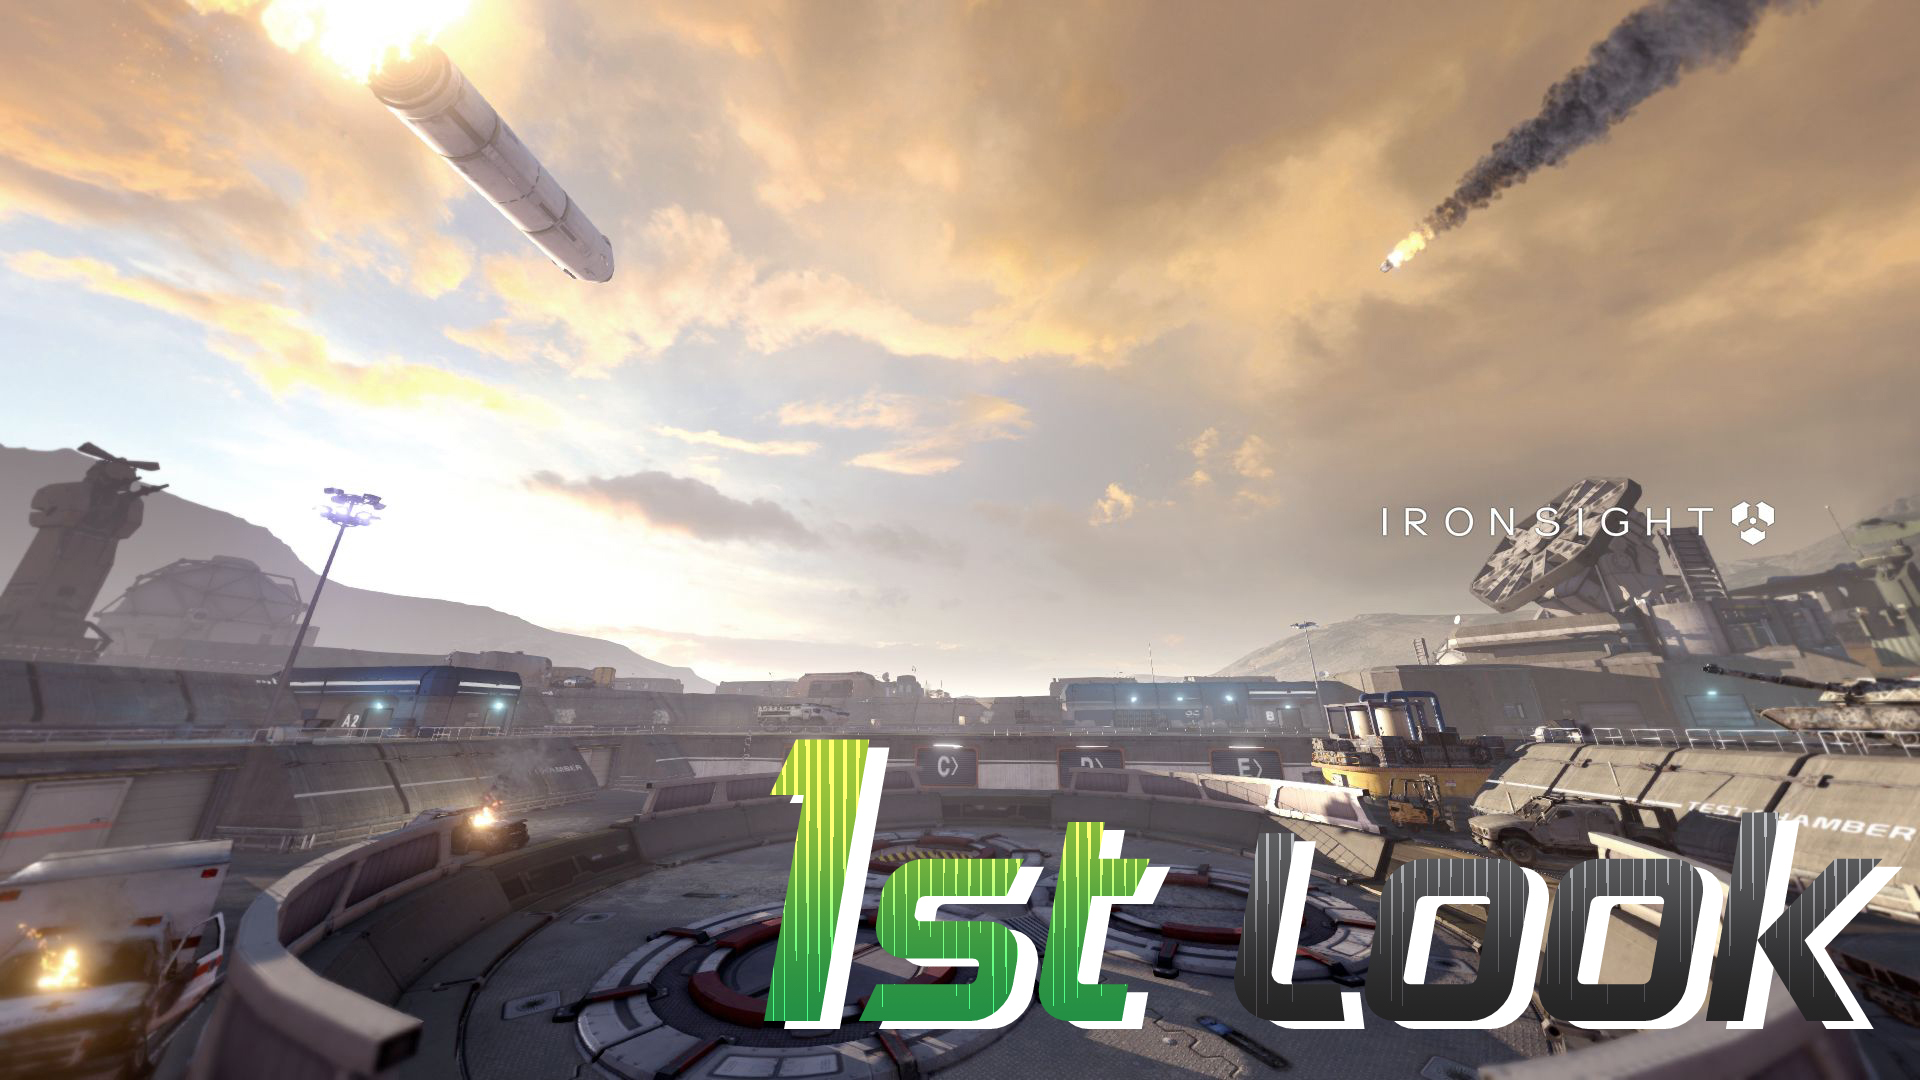 Colt takes a first look at Ironsight